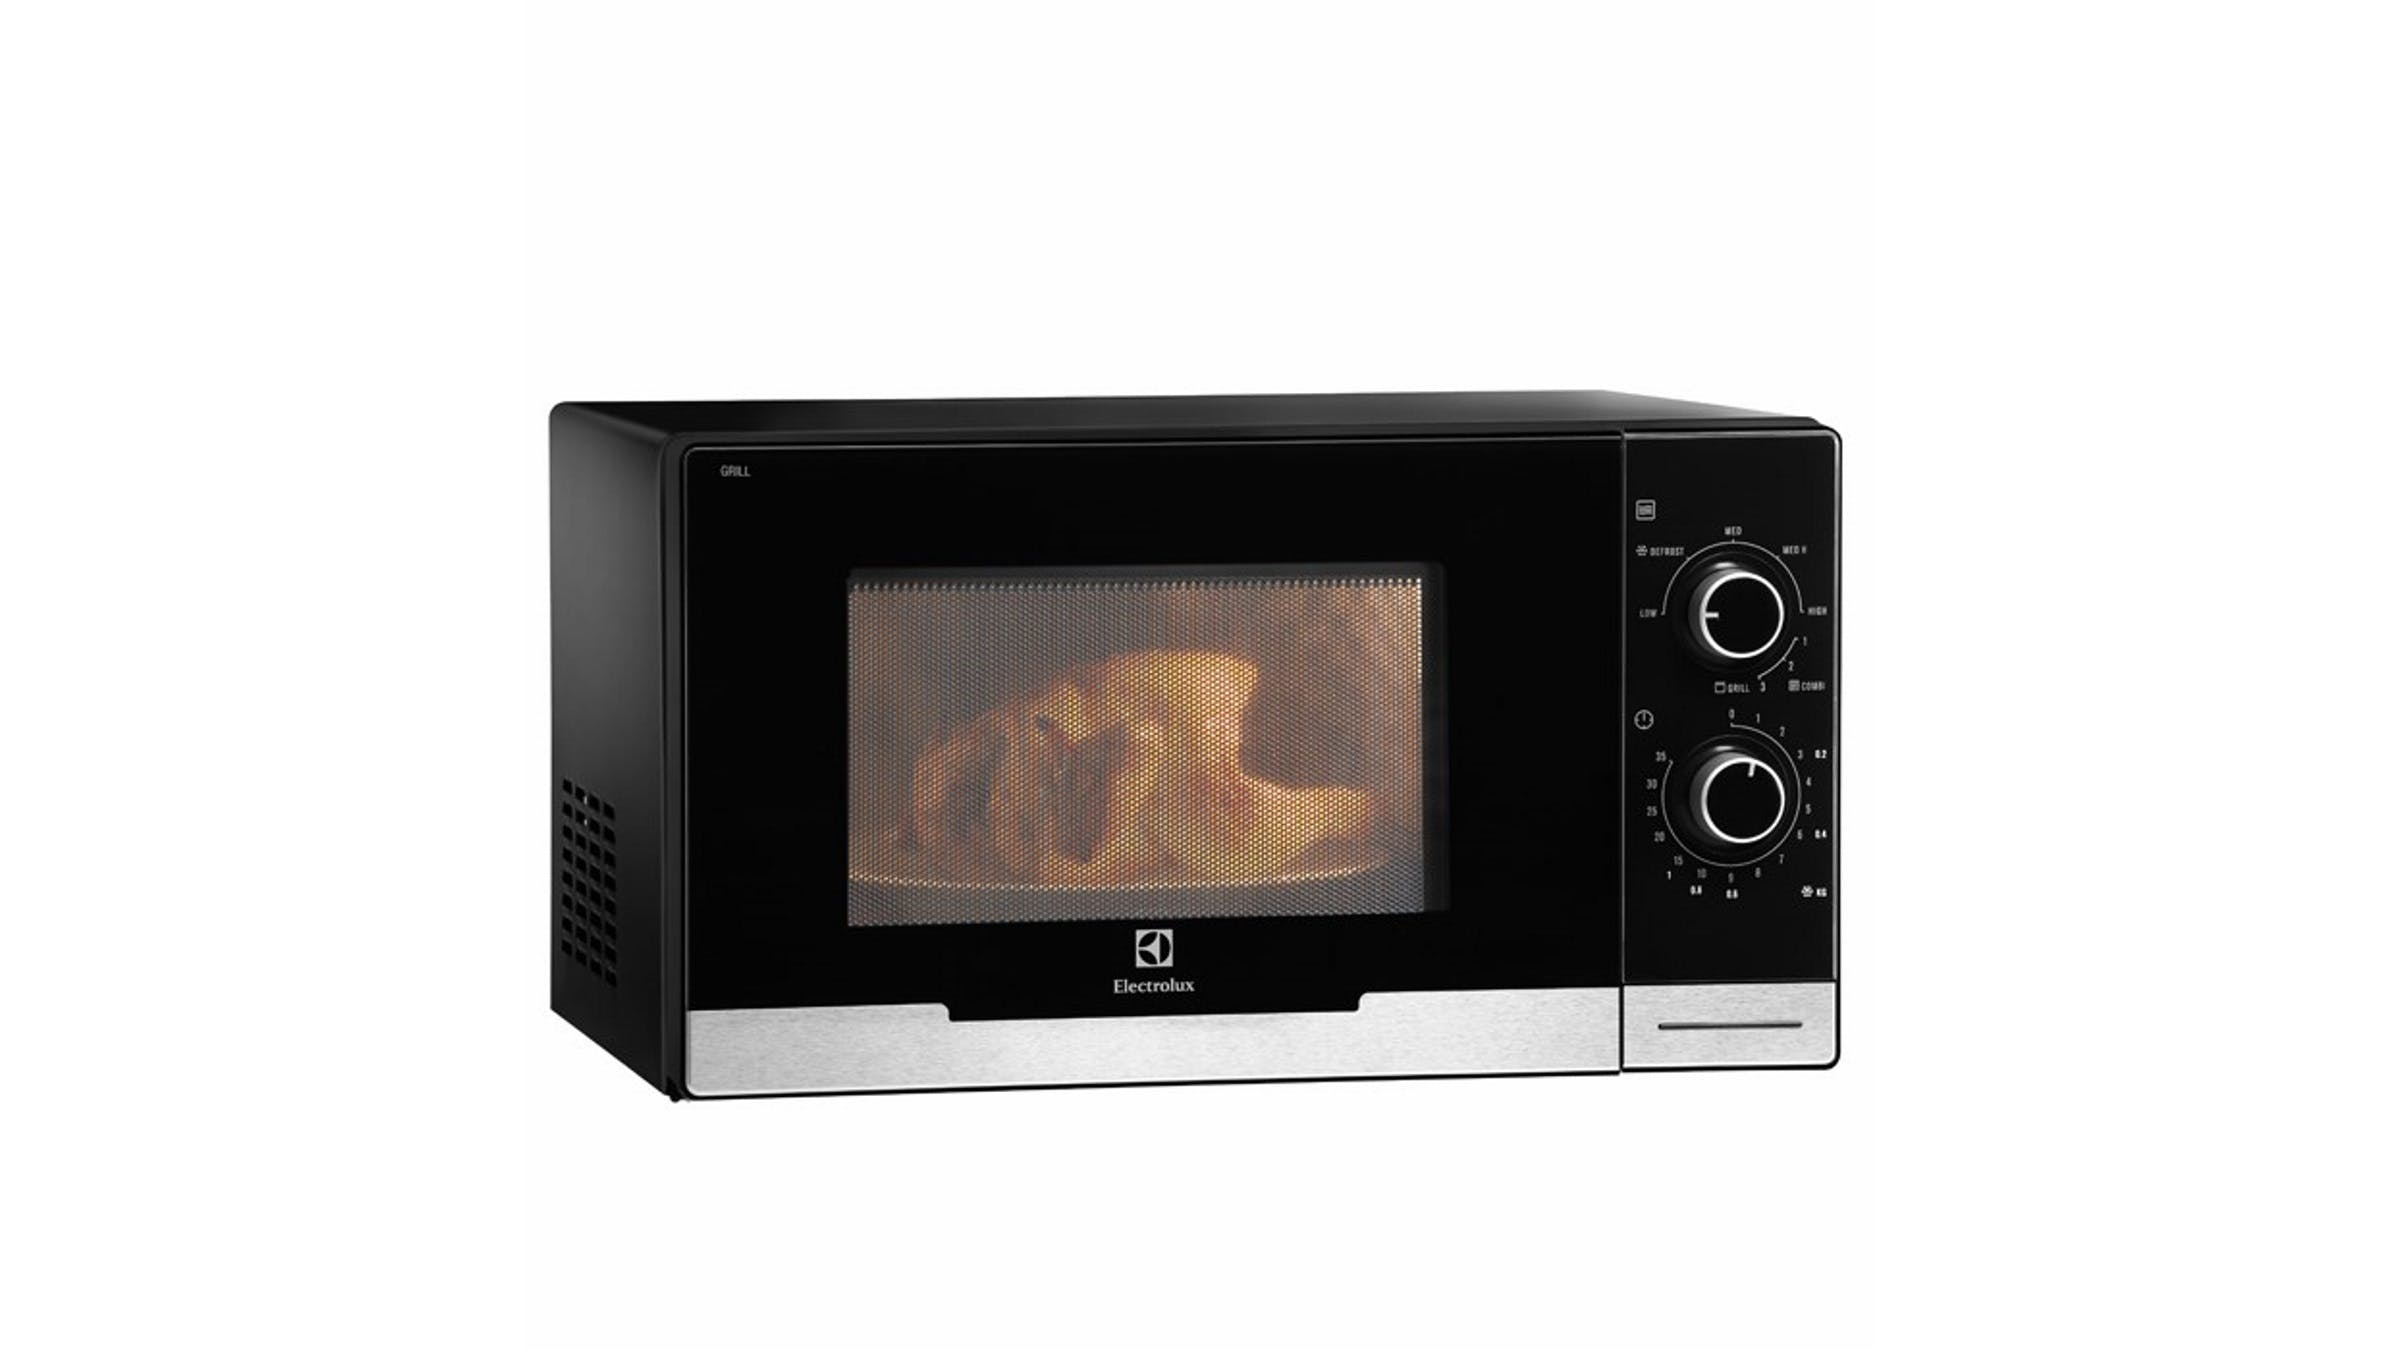 toaster hero the ovens combo microwave canada mini hr smart jun collections breville oven